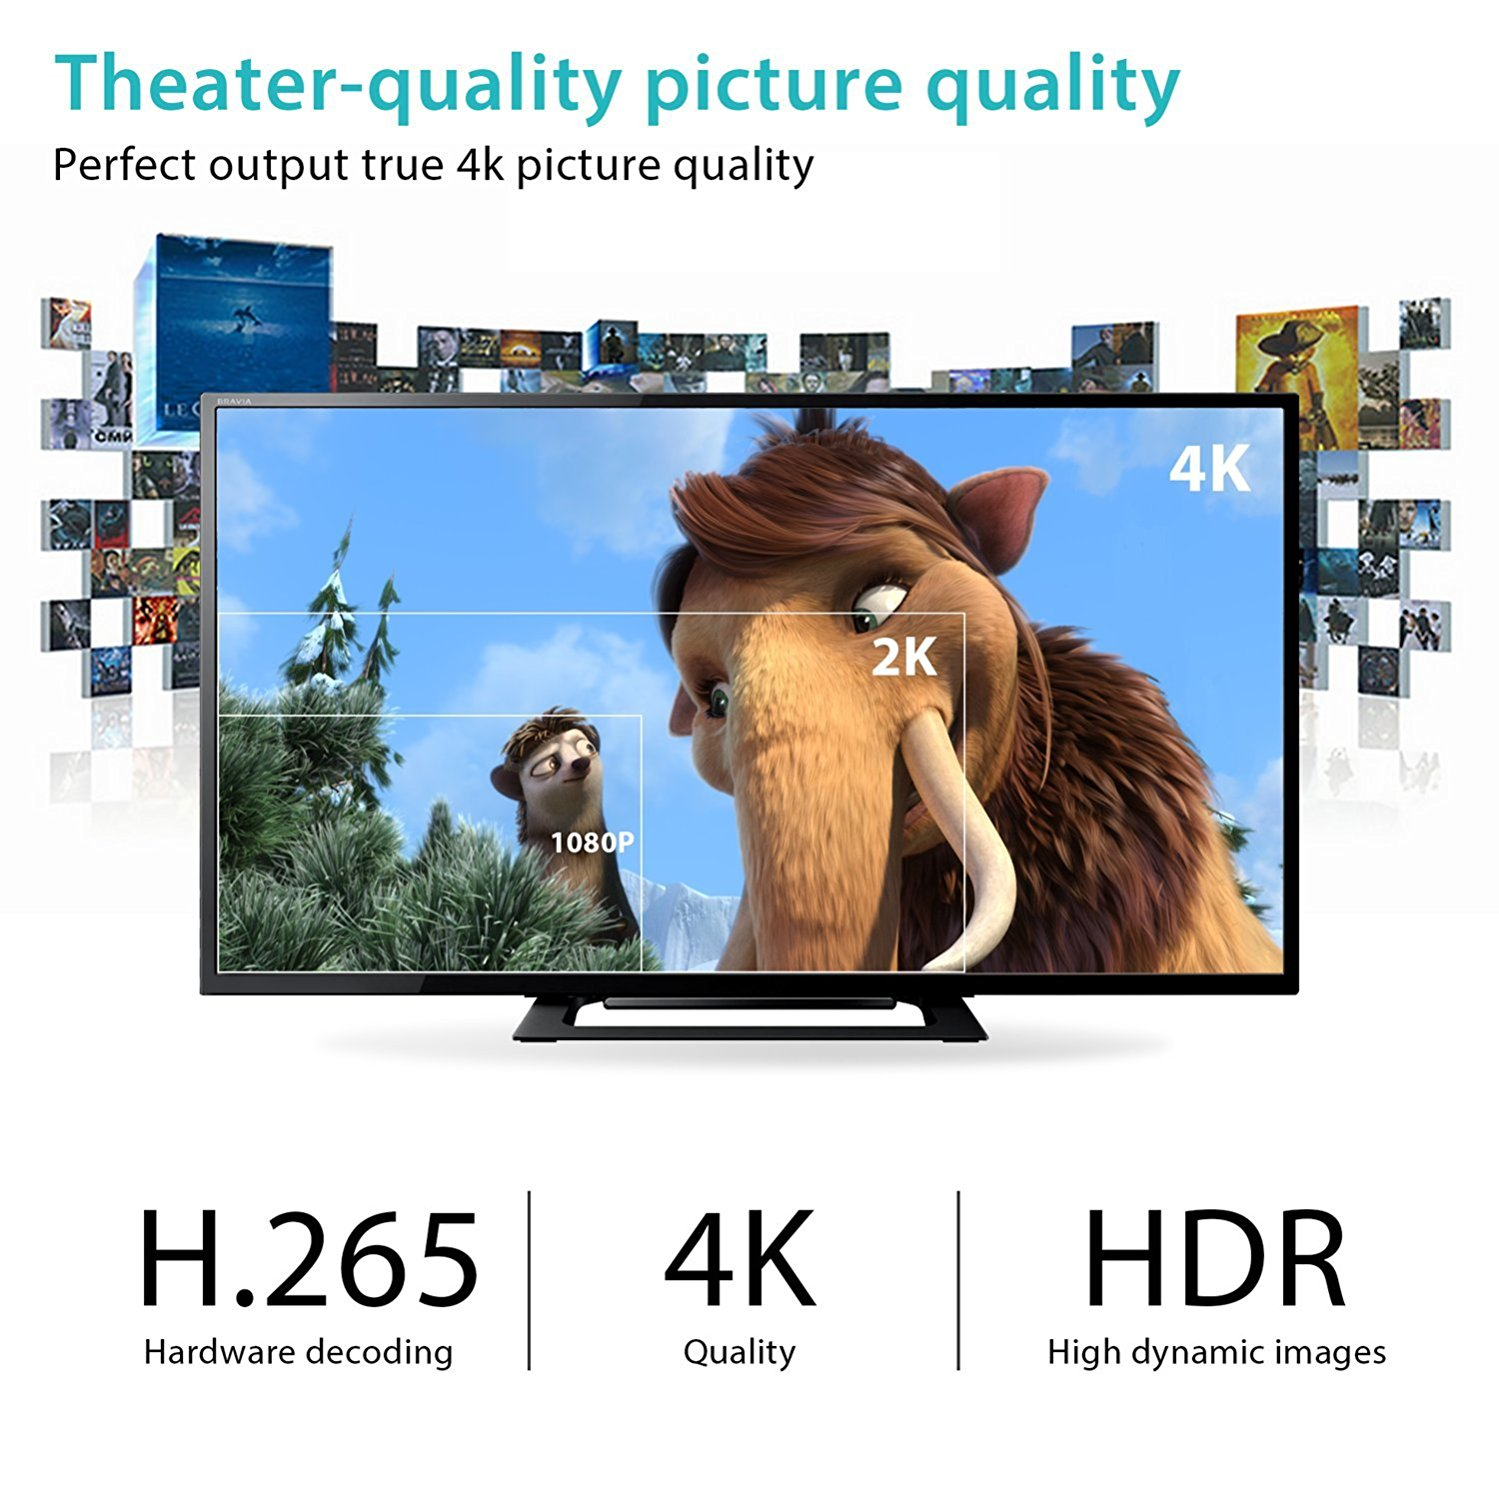 Kingsring vendita caldo Android 7.1 smart tv box H96 pro plus 3 gb 32 gb amlogic s912 octa core android tv box H96 pro +